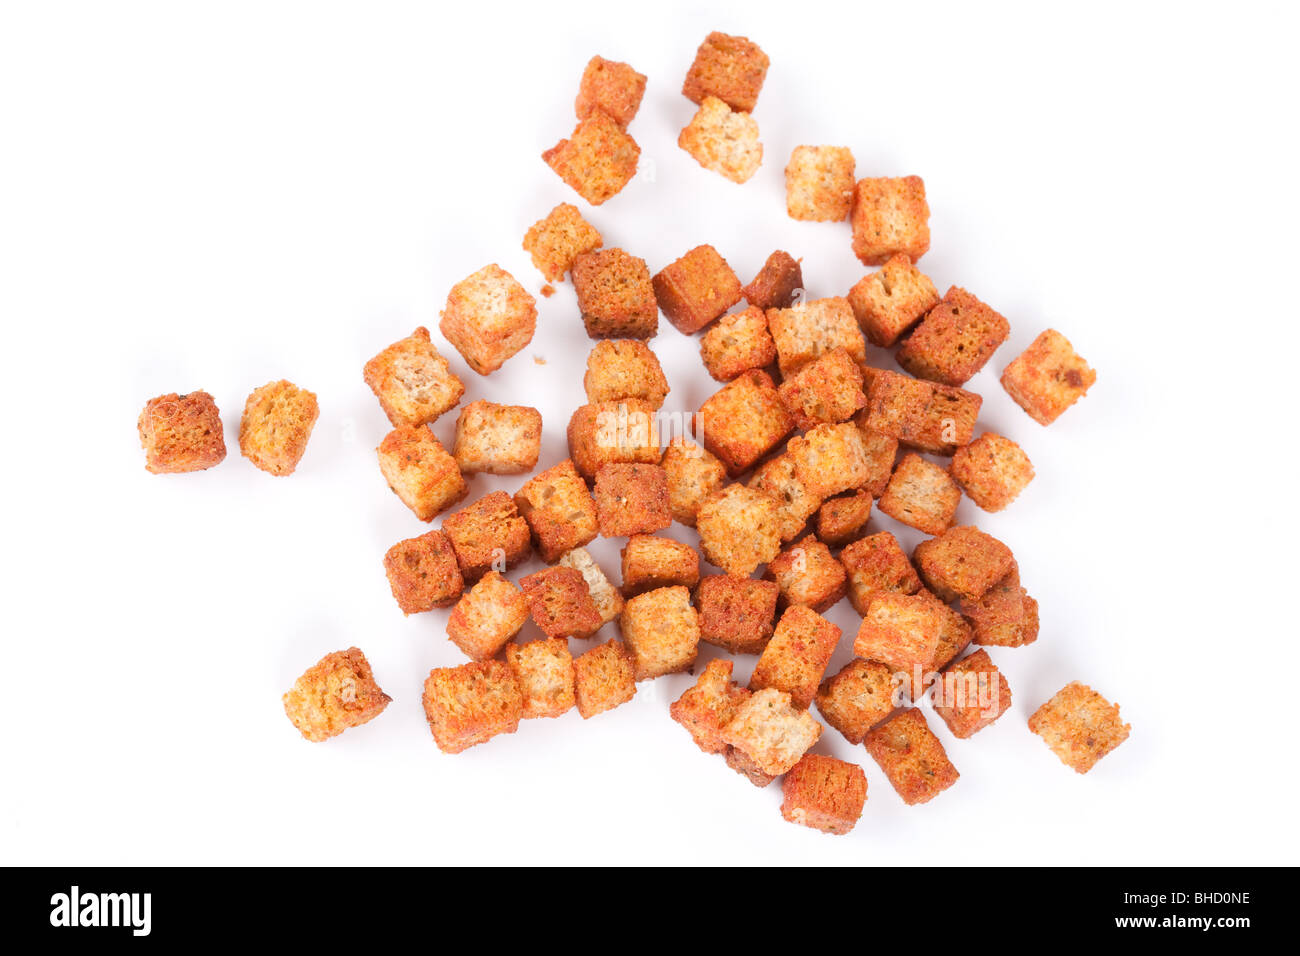 Close up of delicious croutons isolated on white background - Stock Image